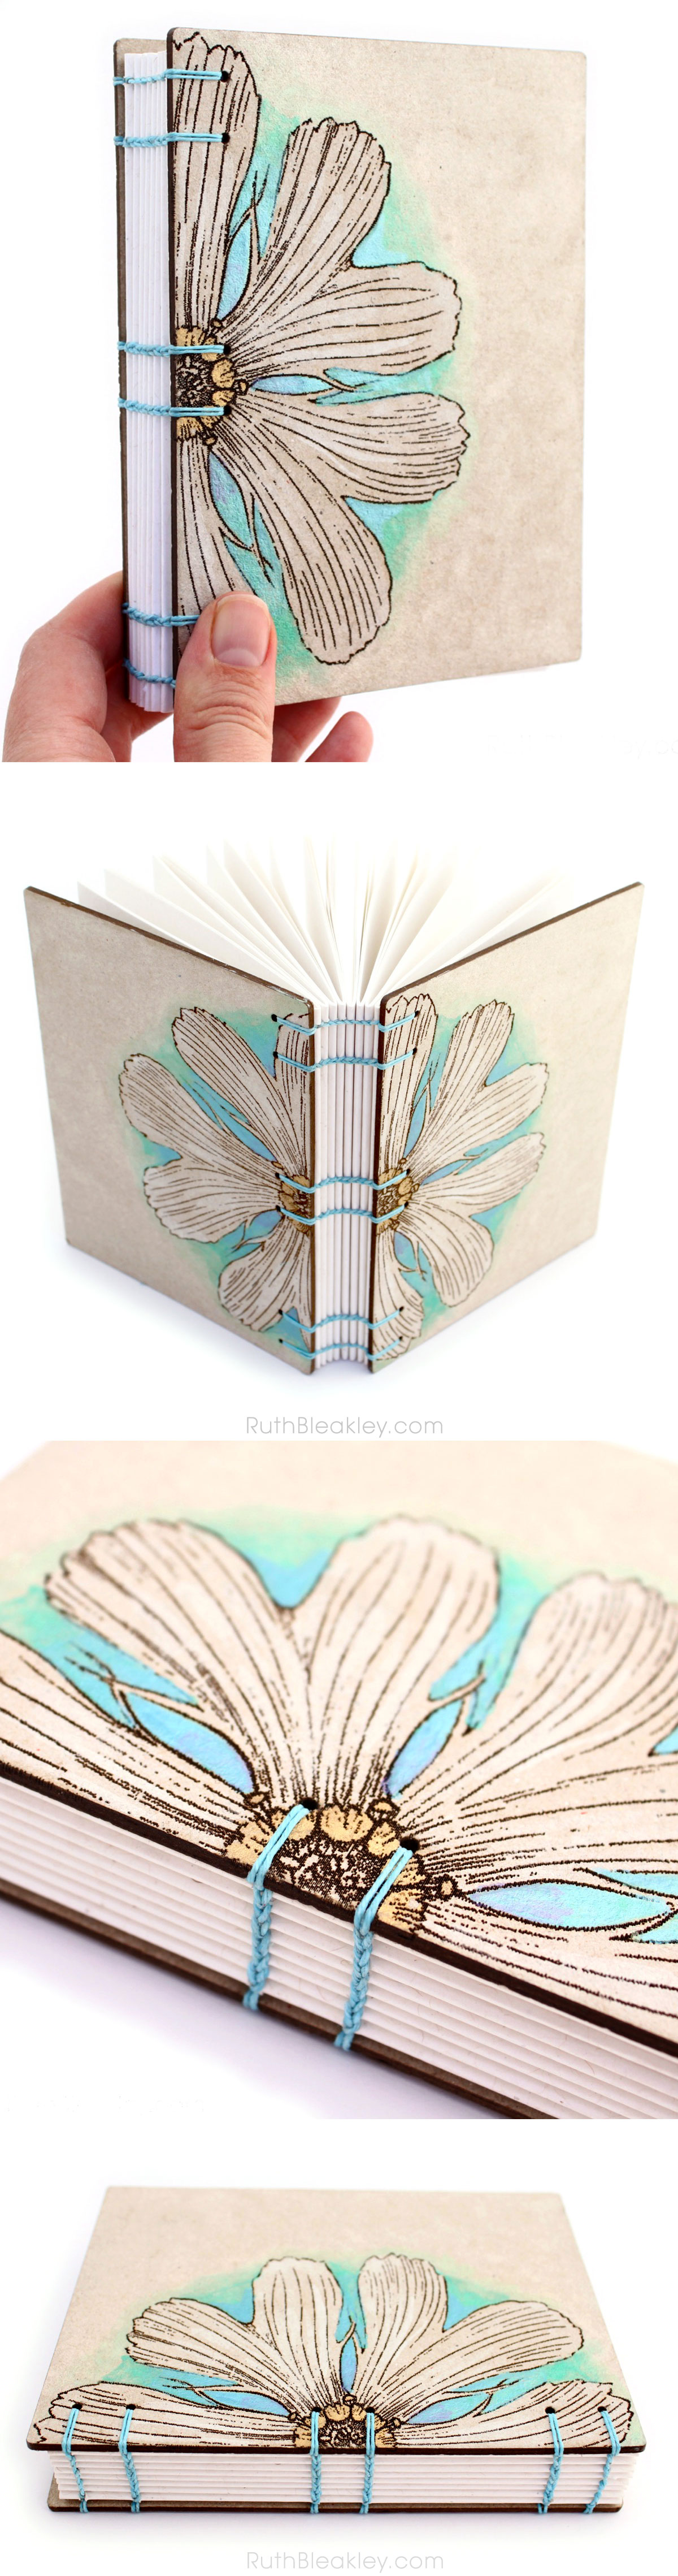 Hand Painted Daisy Coptic Journal By Bookbinder Ruth Bleakley